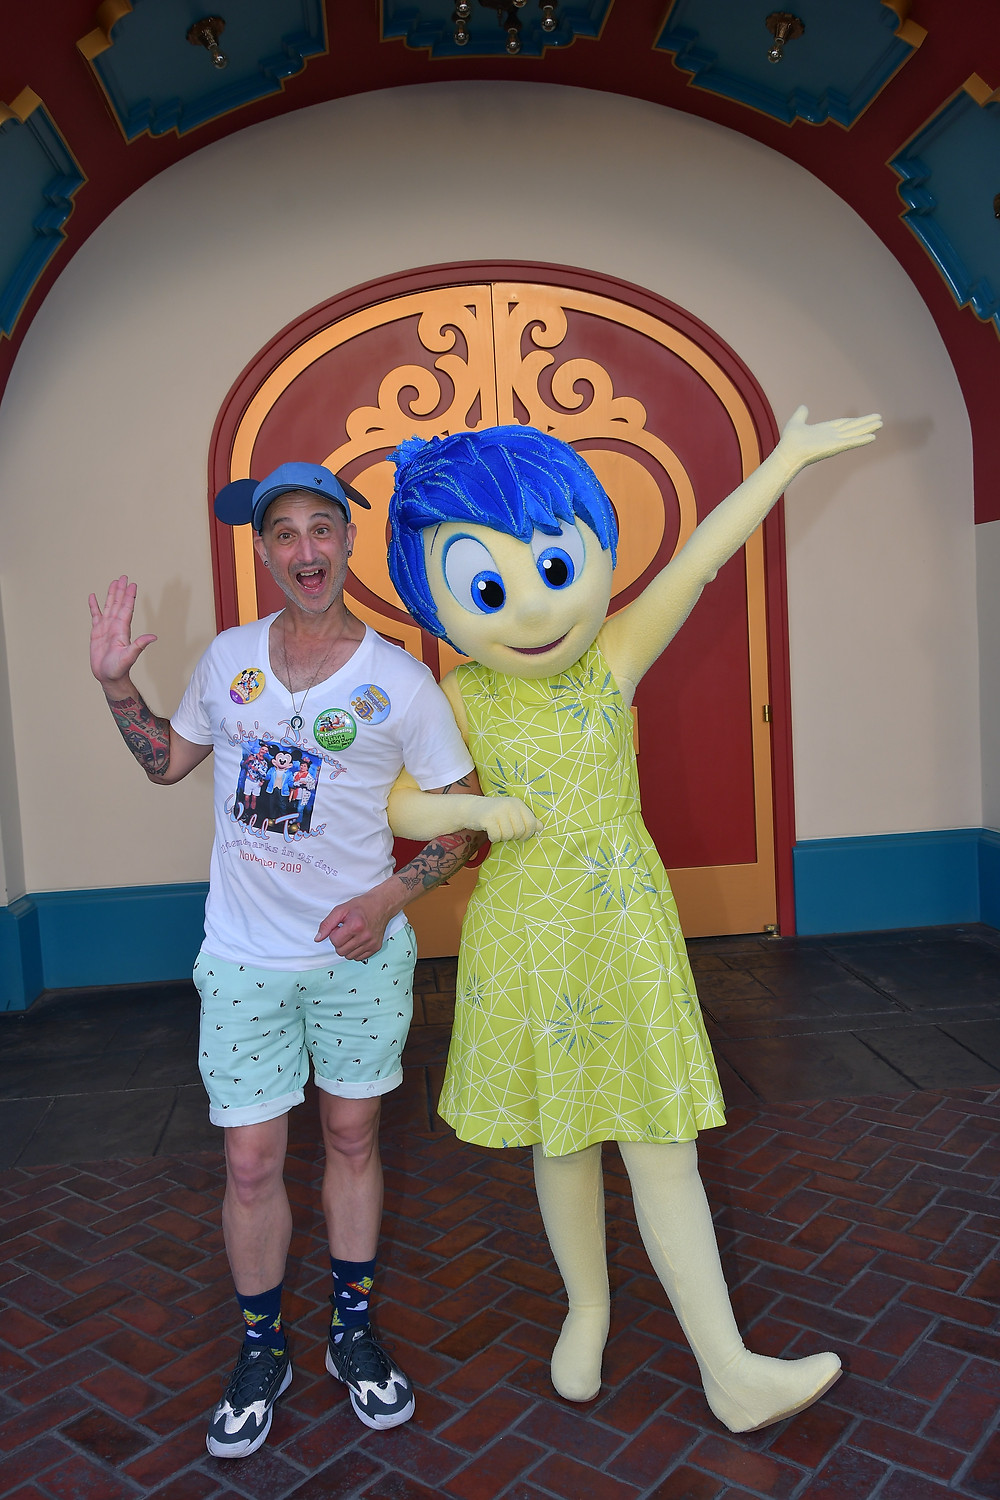 Jake loves Disney, travels to the parks when he can, is a big kid at heart.